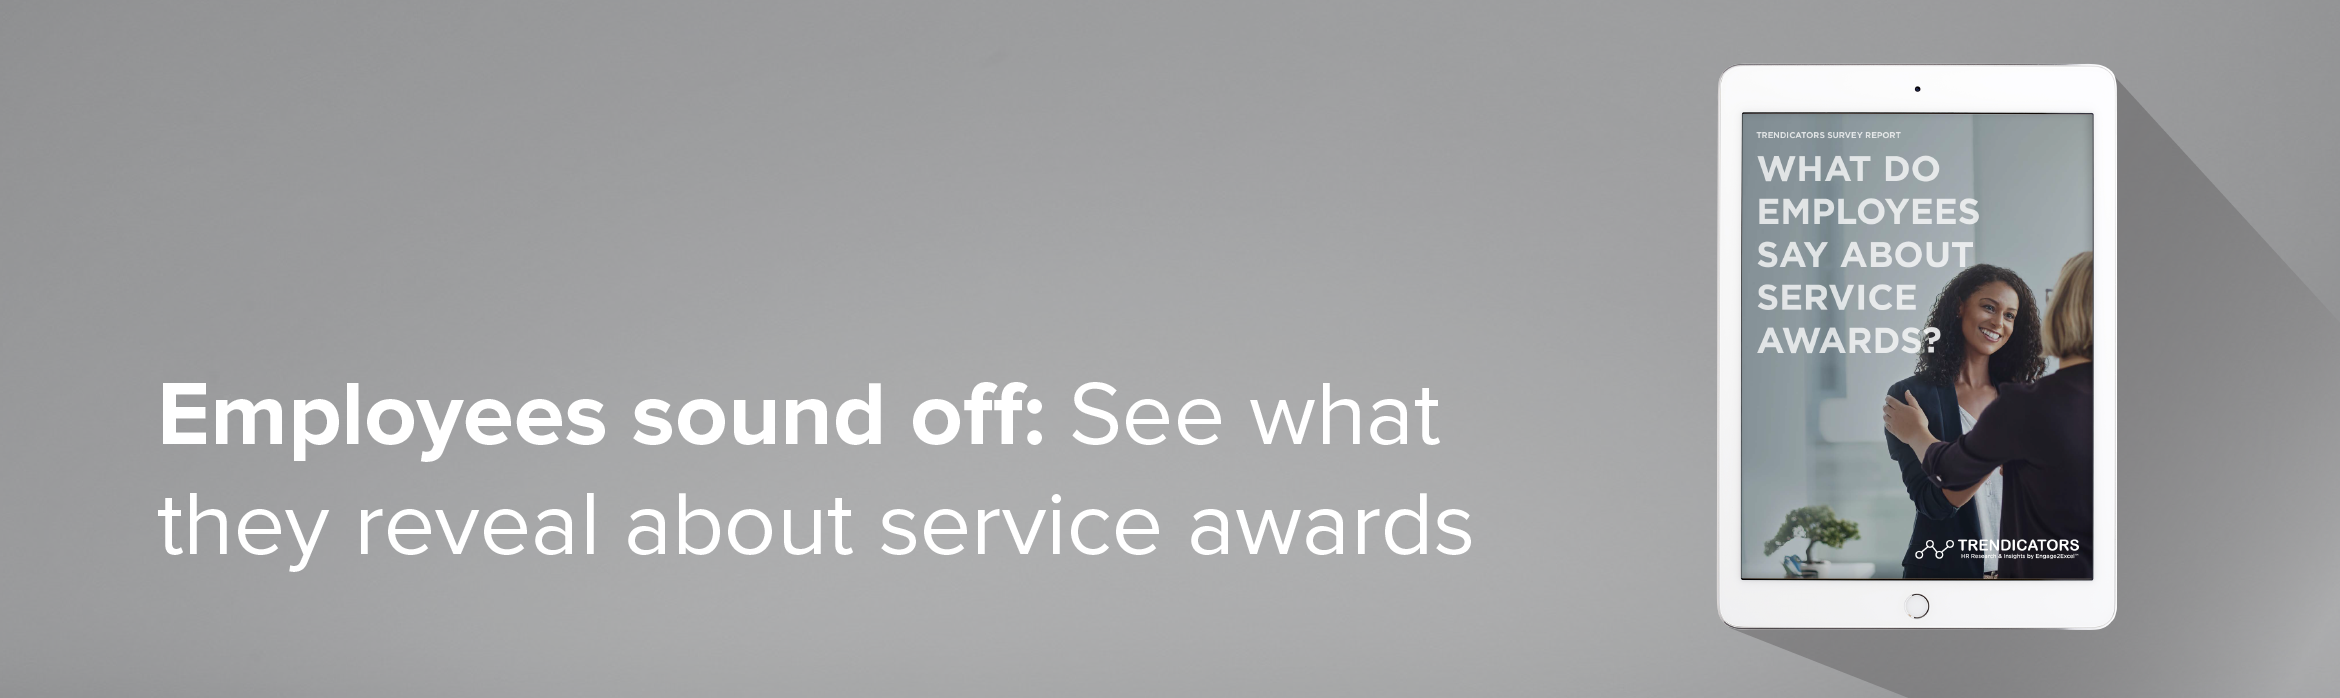 What Do Employees Say About Service Awards?